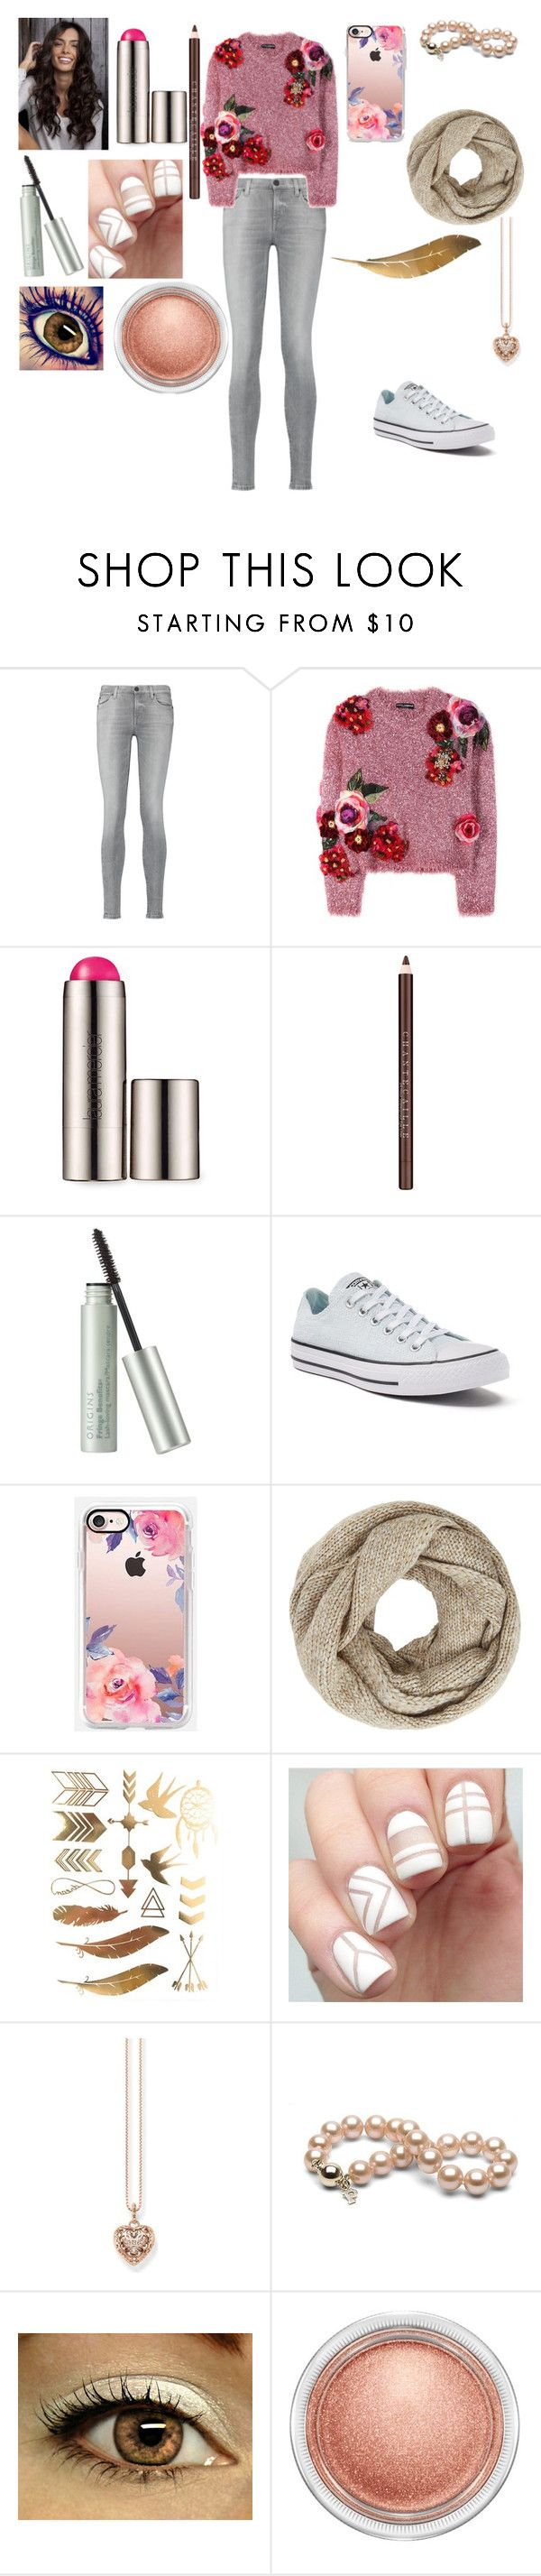 """""""Yasmine #1"""" by kei-lily-amethyst on Polyvore featuring 7 For All Mankind, Dolce&Gabbana, Laura Mercier, Chantecaille, Origins, Converse, Casetify, John Lewis, Thomas Sabo and MAC Cosmetics"""